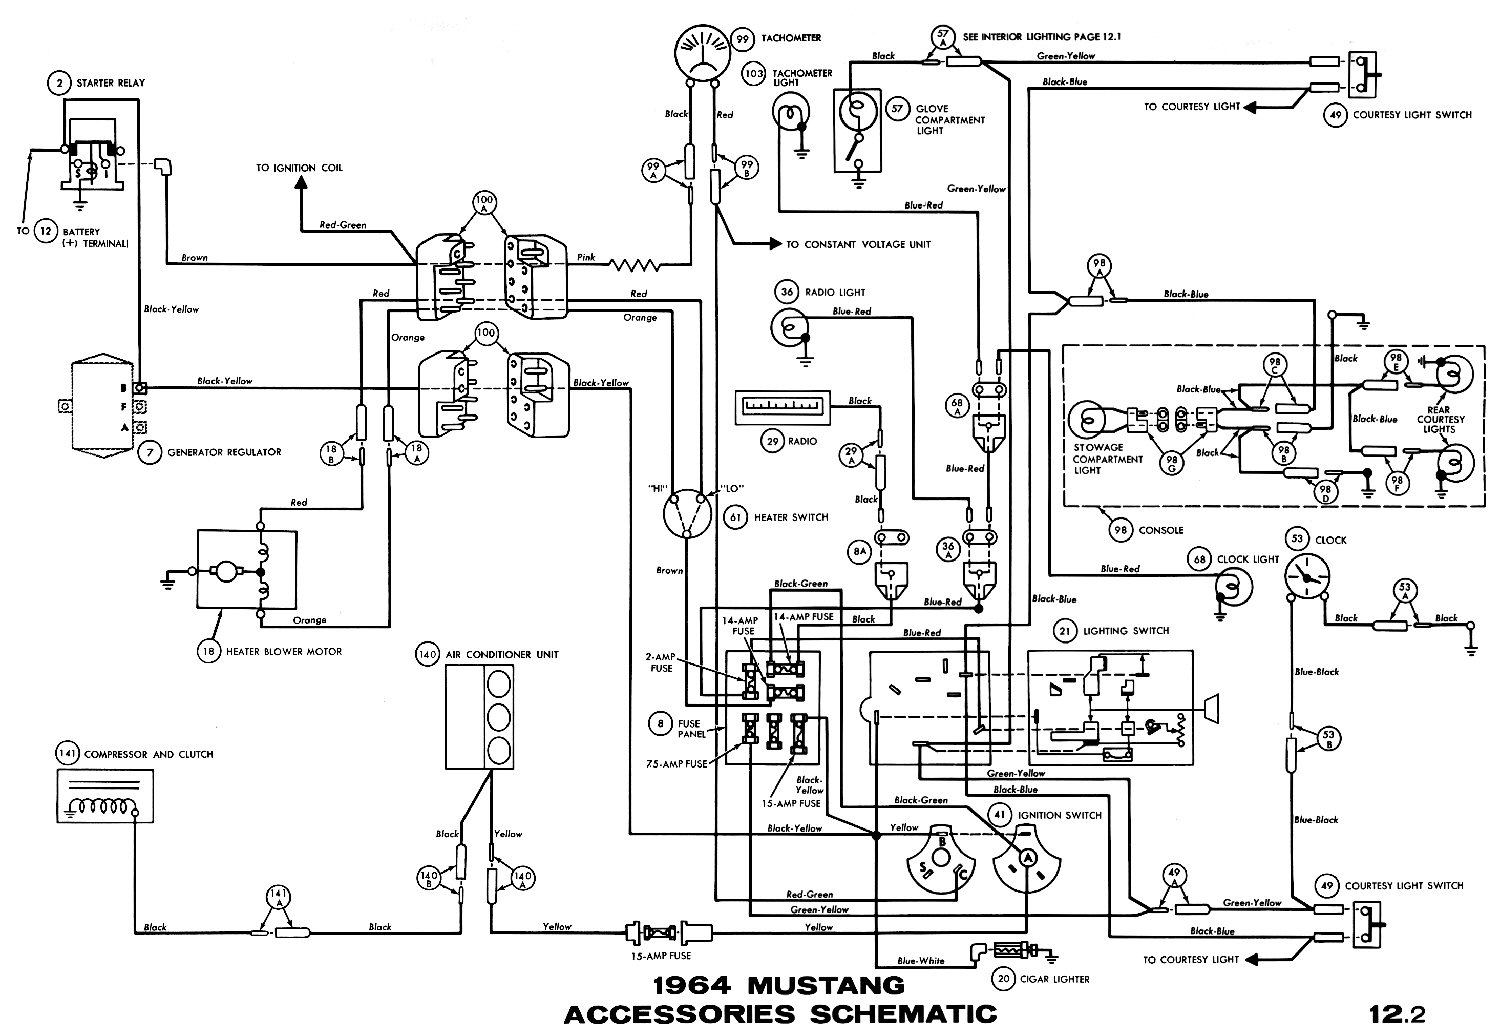 1964m 1964 mustang wiring diagrams average joe restoration 1964 ford wiring diagram at aneh.co